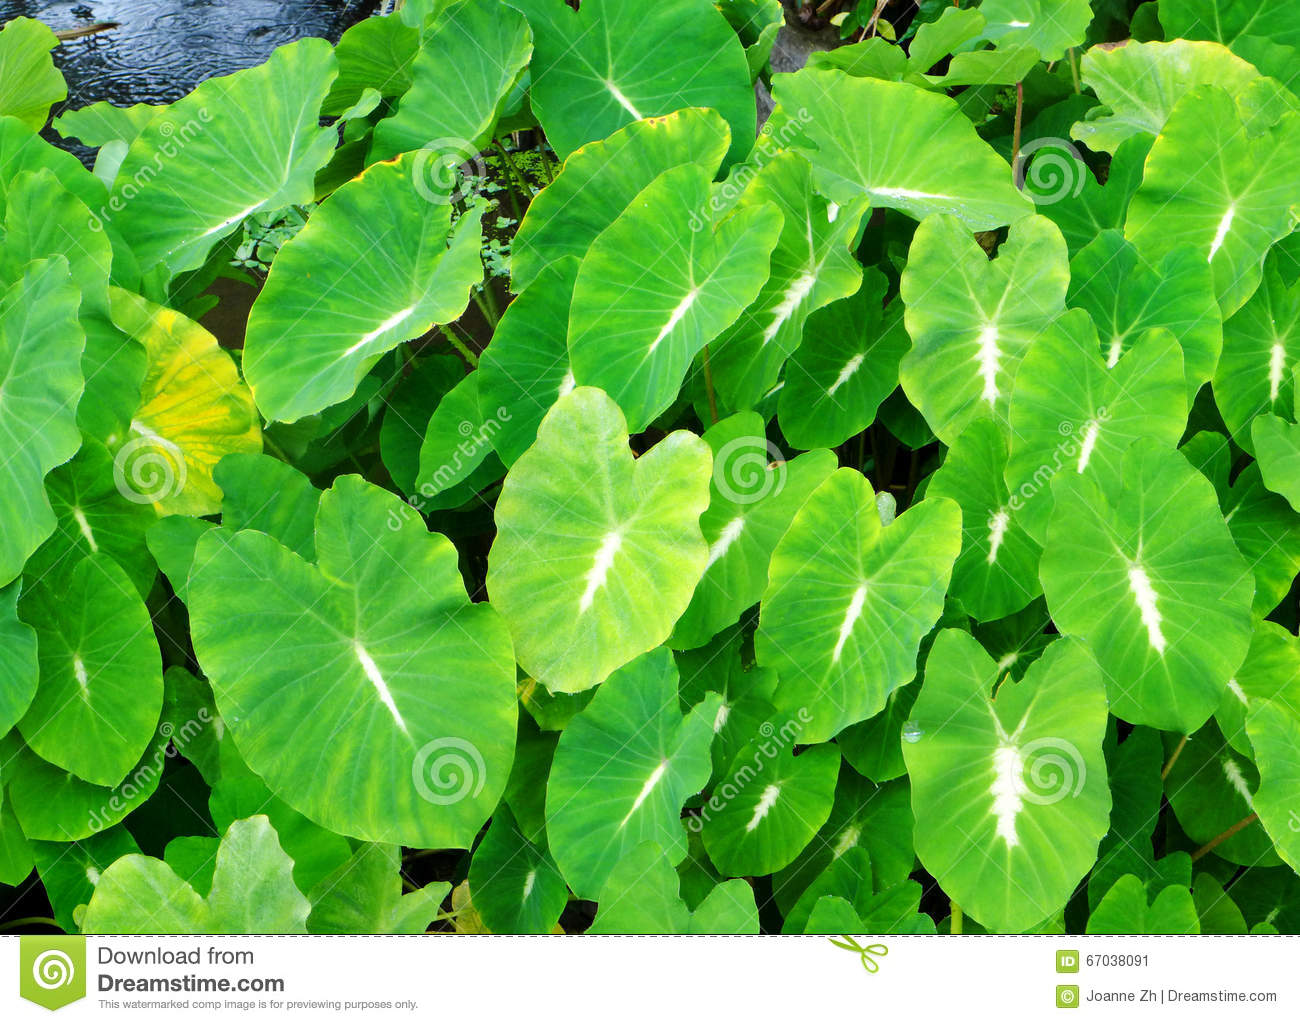 Aquatic Plants With Common Names | www.pixshark.com ...